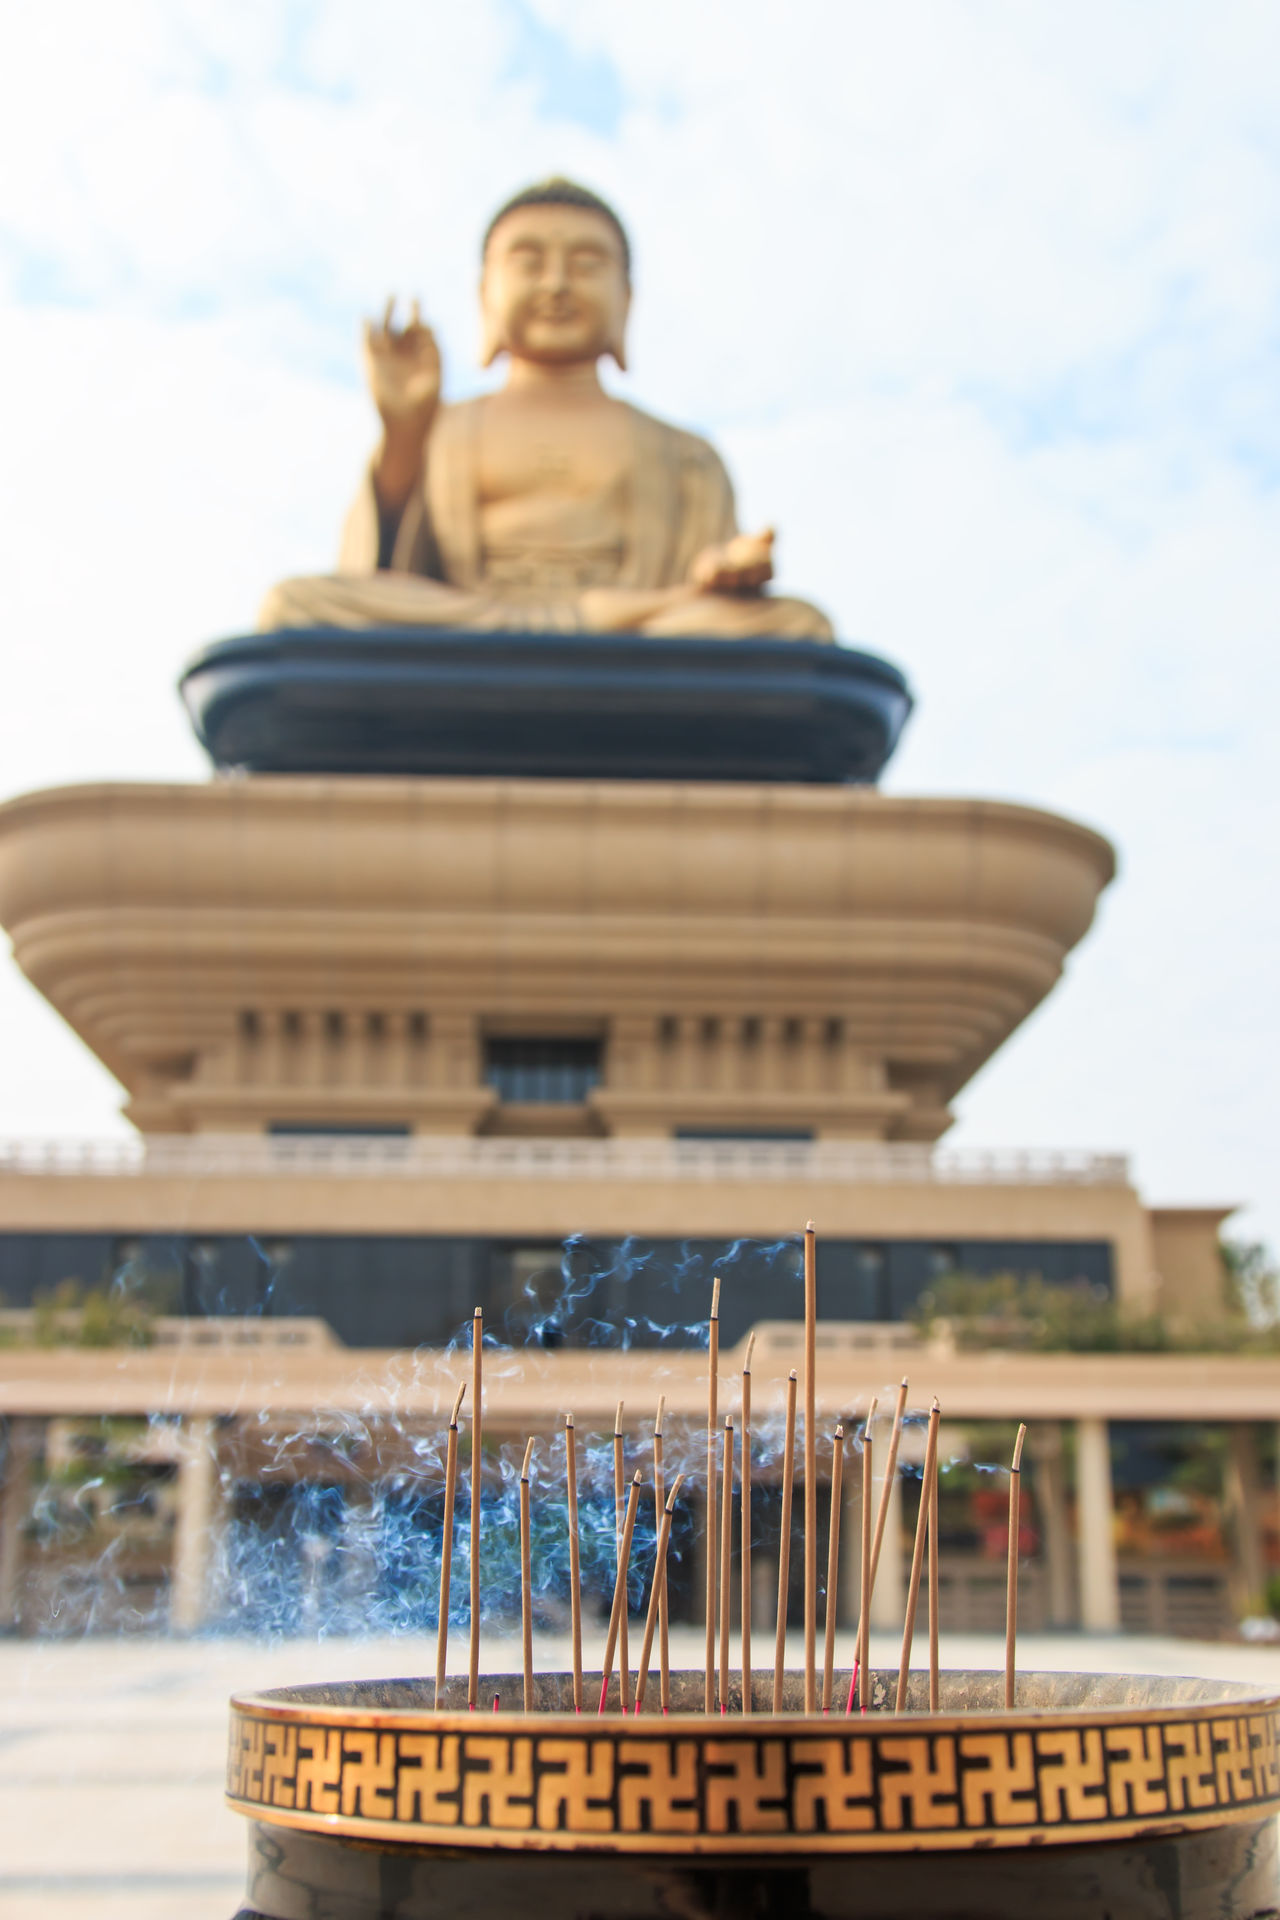 Kaohsiung, Taiwan - December 15,2014: Giant buddha and incense at the Fo Guang Shan of Taiwan, Kaohiung Architectural Column Art ASIA Asian  Asian Culture Buddha Buddha Statue Cloud Cloud - Sky Day Fo Guang Shan Focus On Foreground Kaohsiung Low Angle View No People Outdoors Religion Sky Summer Taiwan Tourism Tradition Travel Destinations